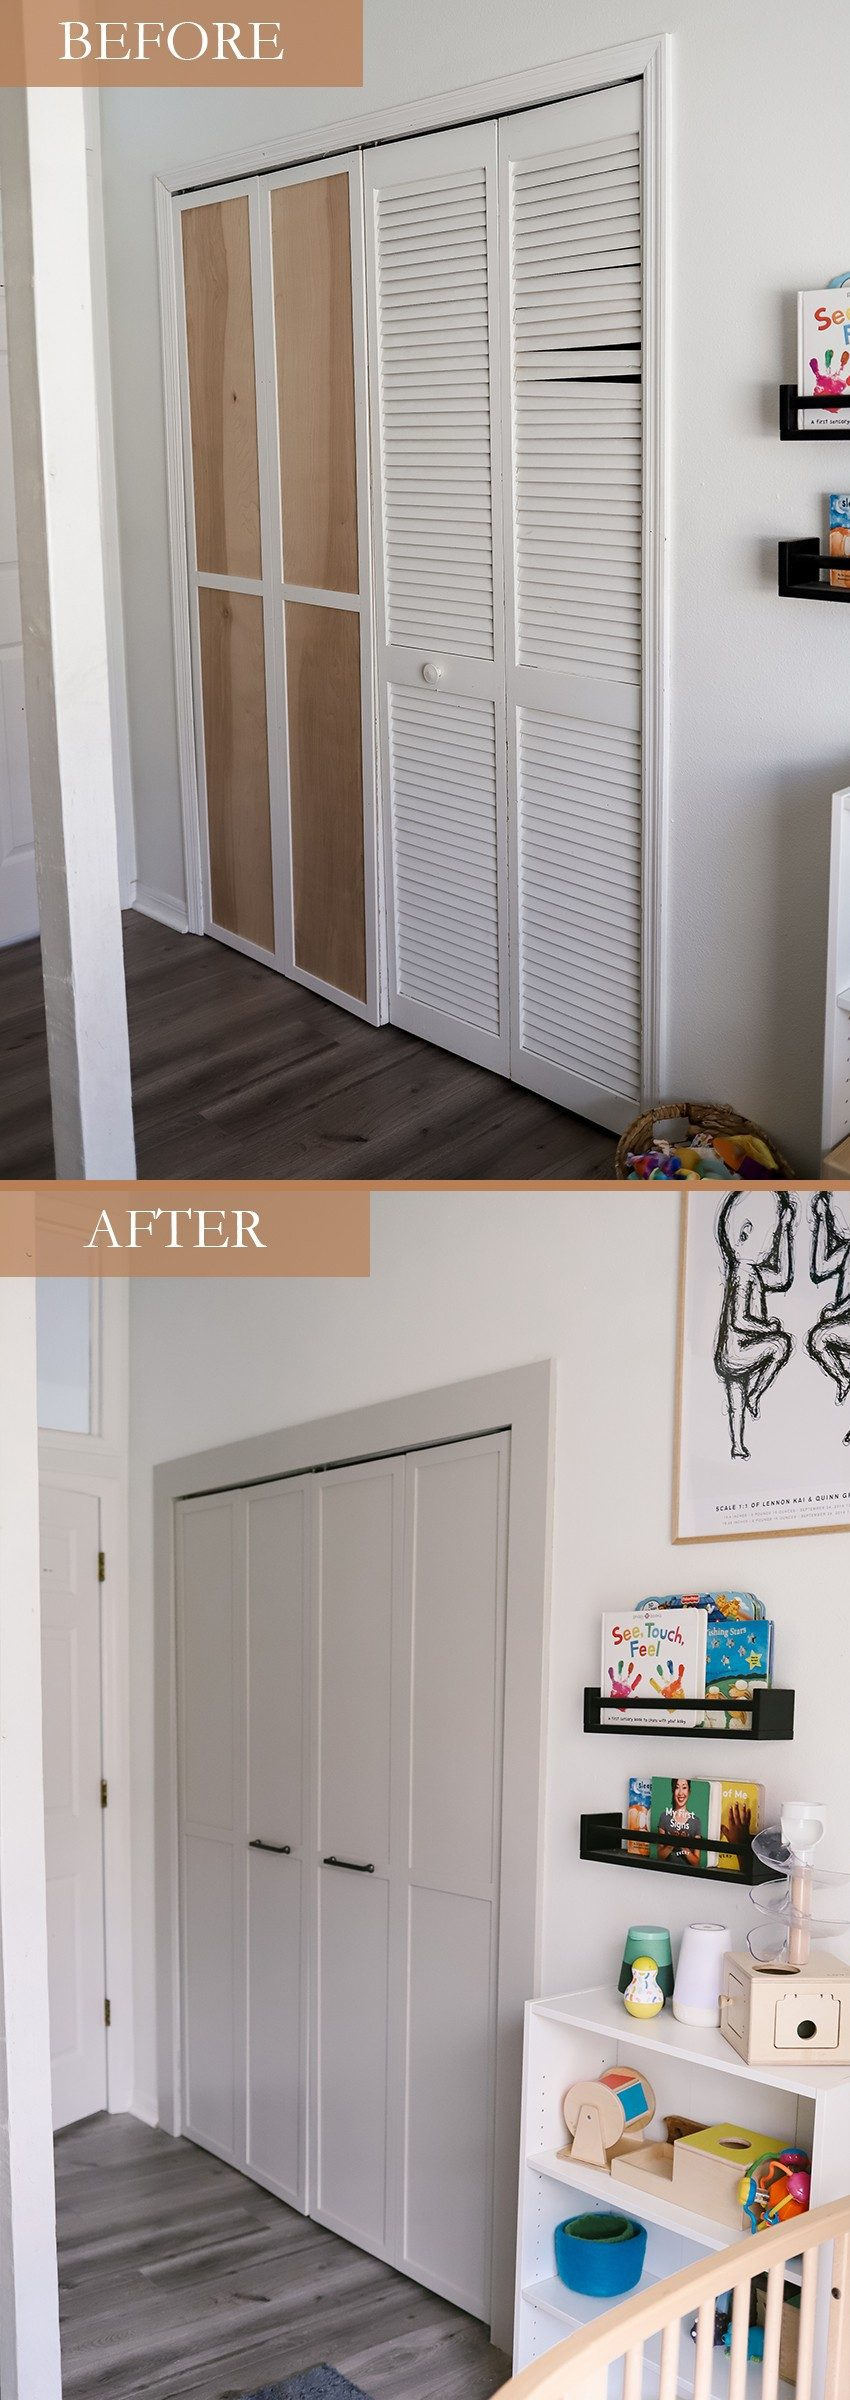 Home Refresh Ideas: DIY Closet Door Upgrade Tutorial. How to update Bi-fold closet doors on a budget. Easy how-to for updating old bifold closet doors and save money (save the hundreds it would cost to replace them!). |DIY Closet Door by popular Florida lifestyle blog, Fresh Mommy Blog: before and after image of a bifold closet door.